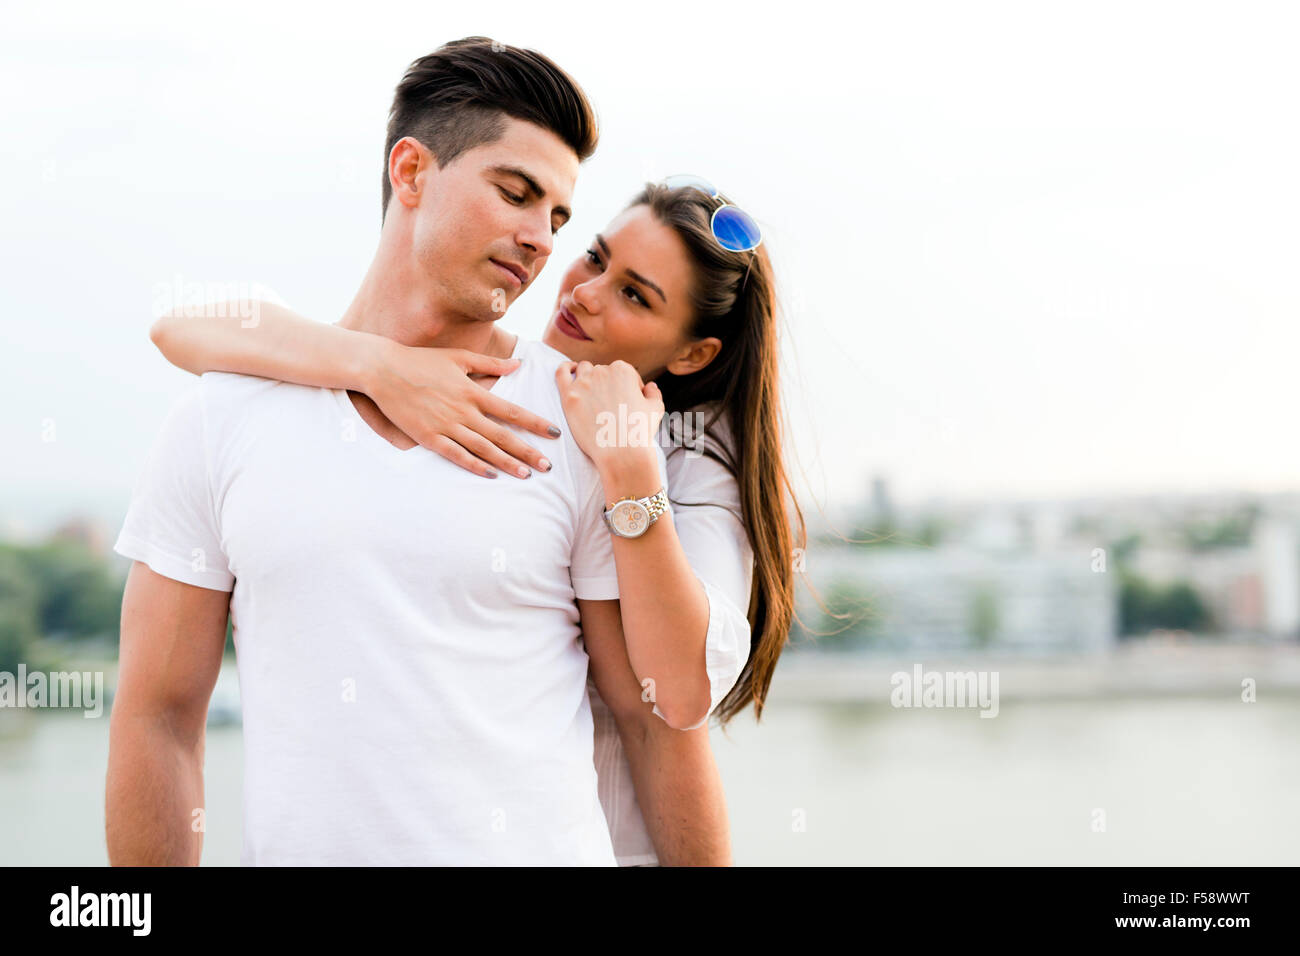 Young and beautiful couple in love bonding with each other - Stock Image